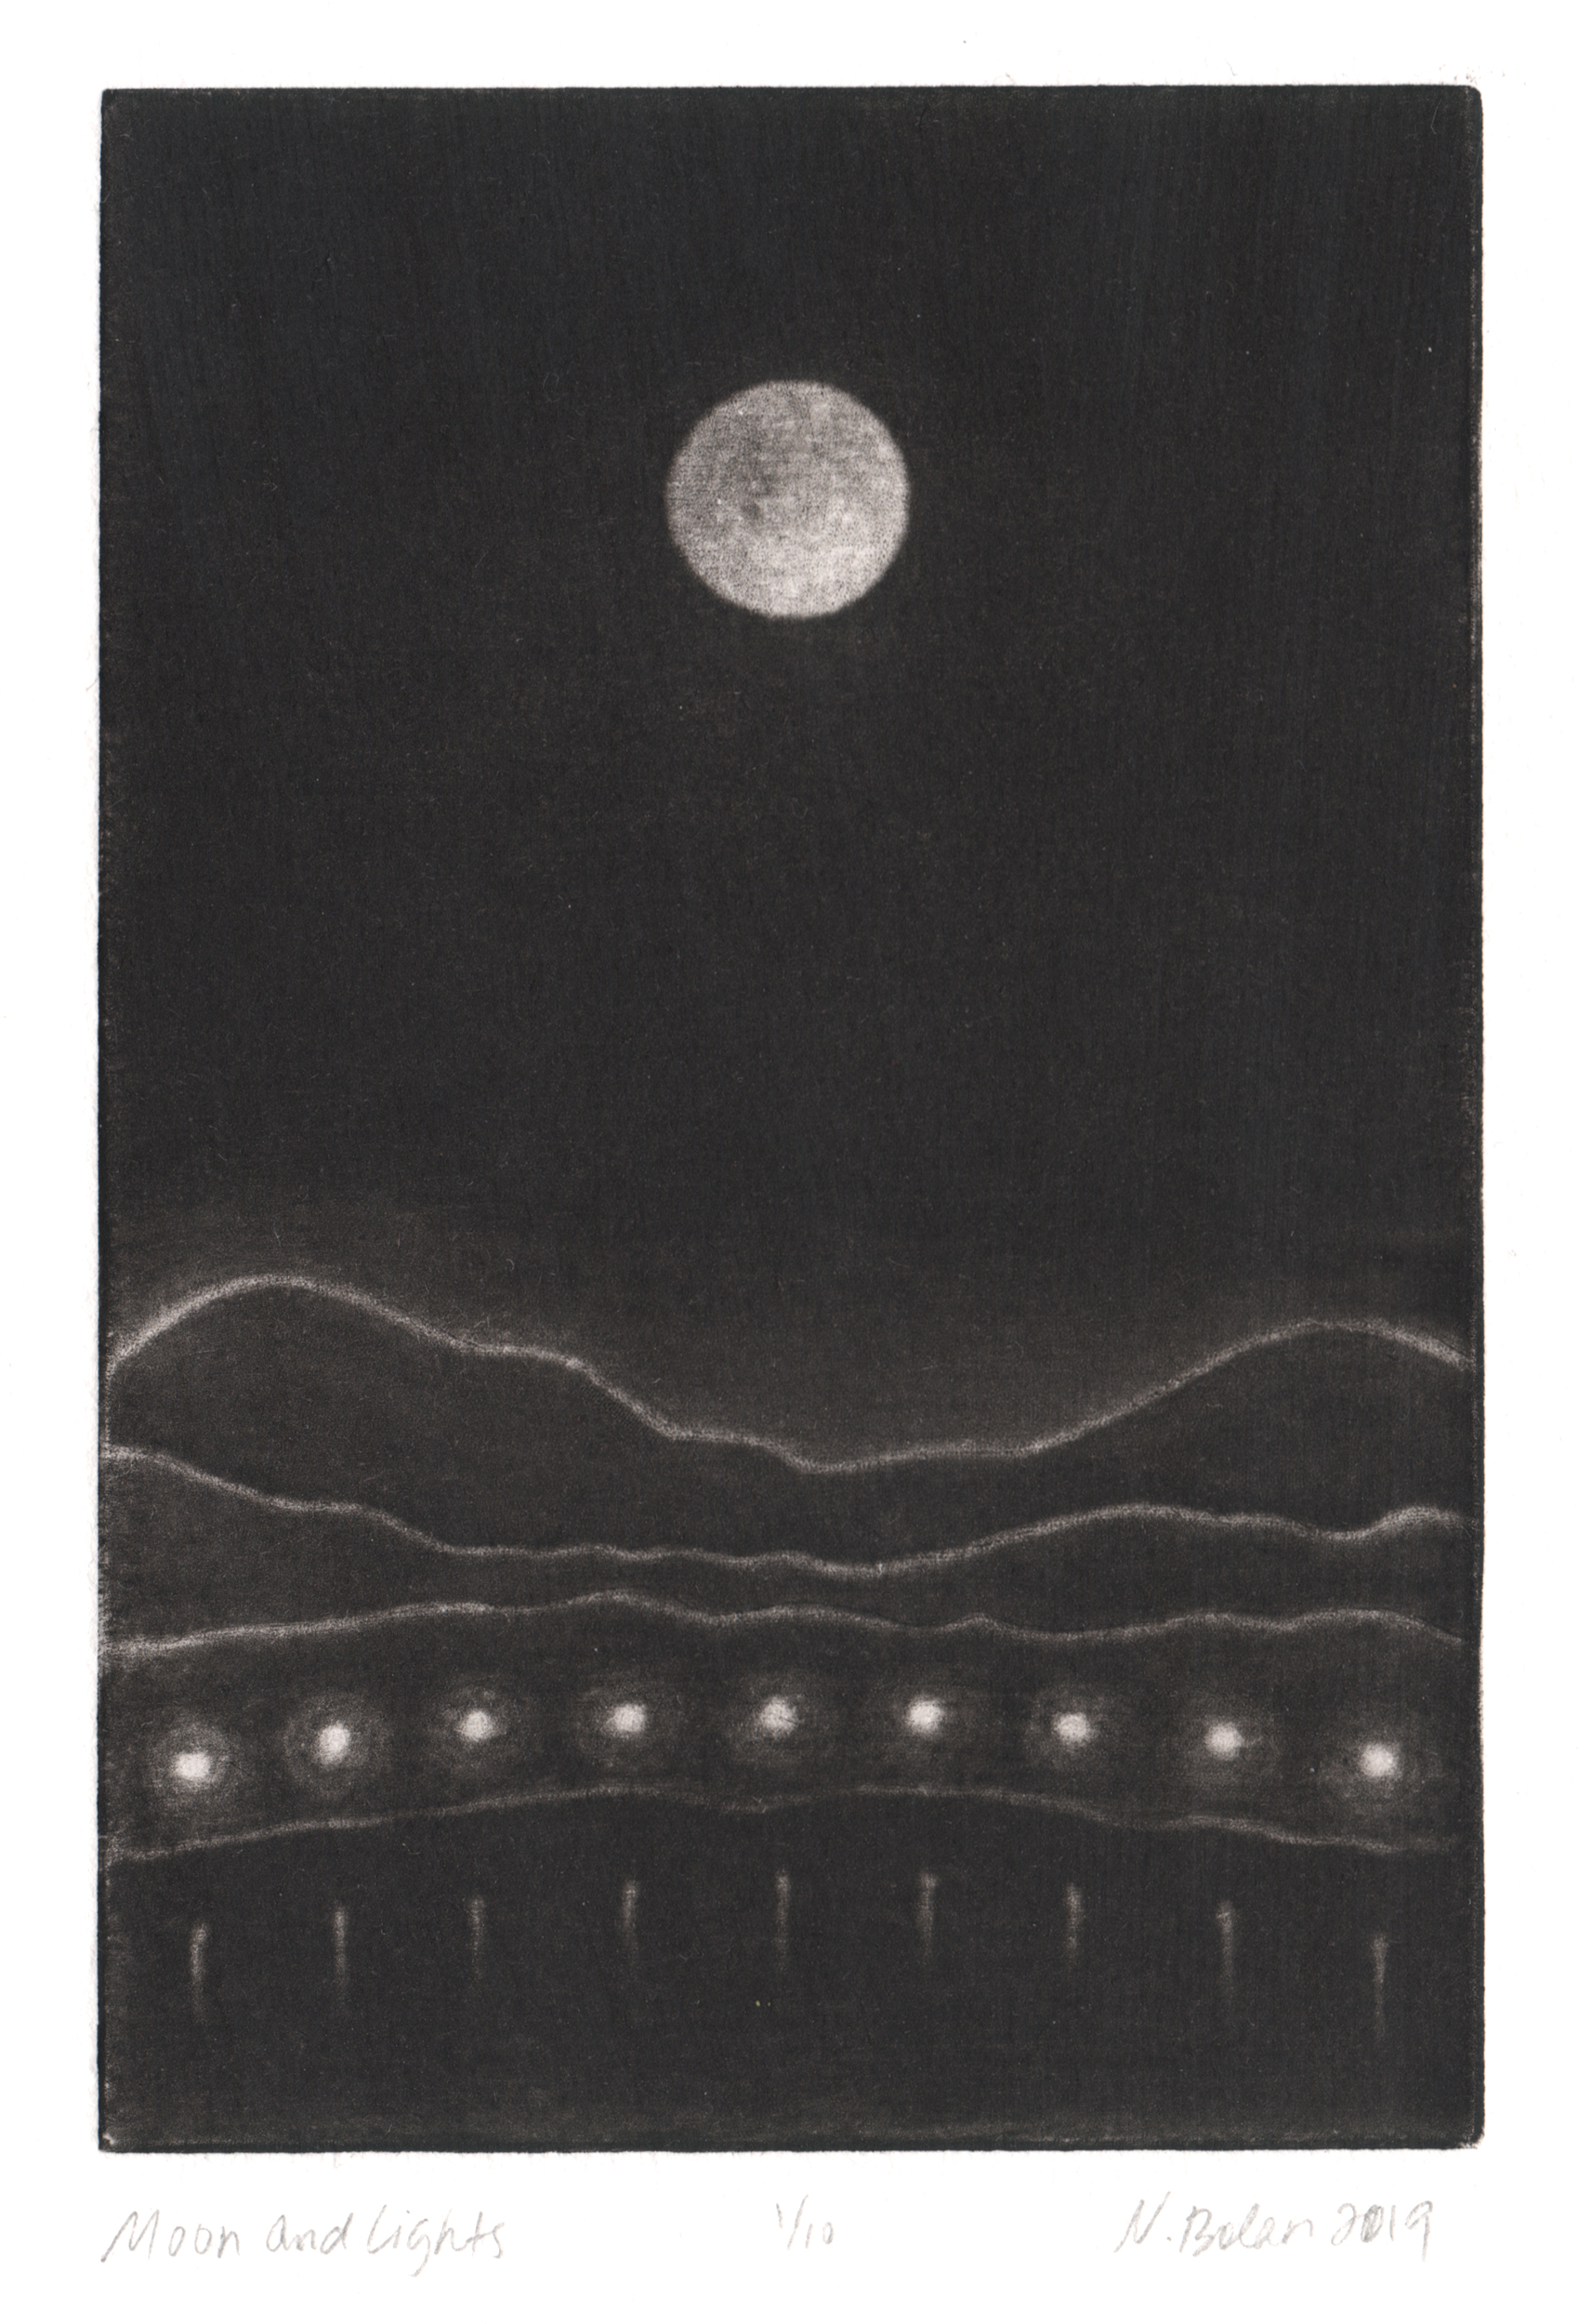 Nancy Bolan, Moon and Lights